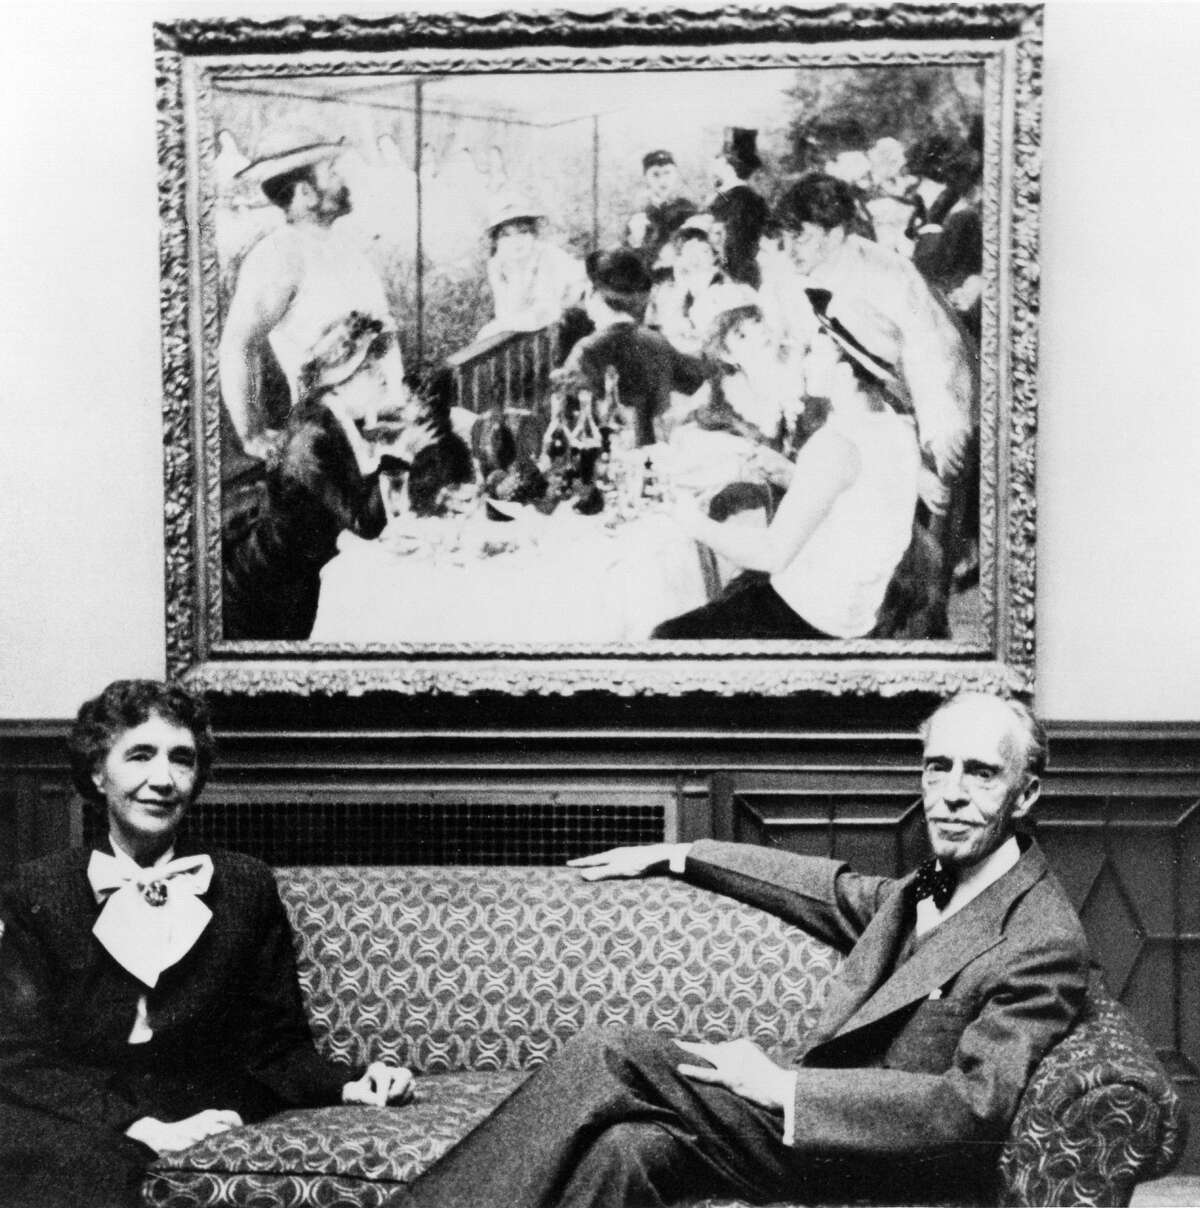 """Marjorie and Duncan Phillips, in about 1954, pose in front of Renoir's """"Luncheon of the Boating Party"""" (1880-81)."""